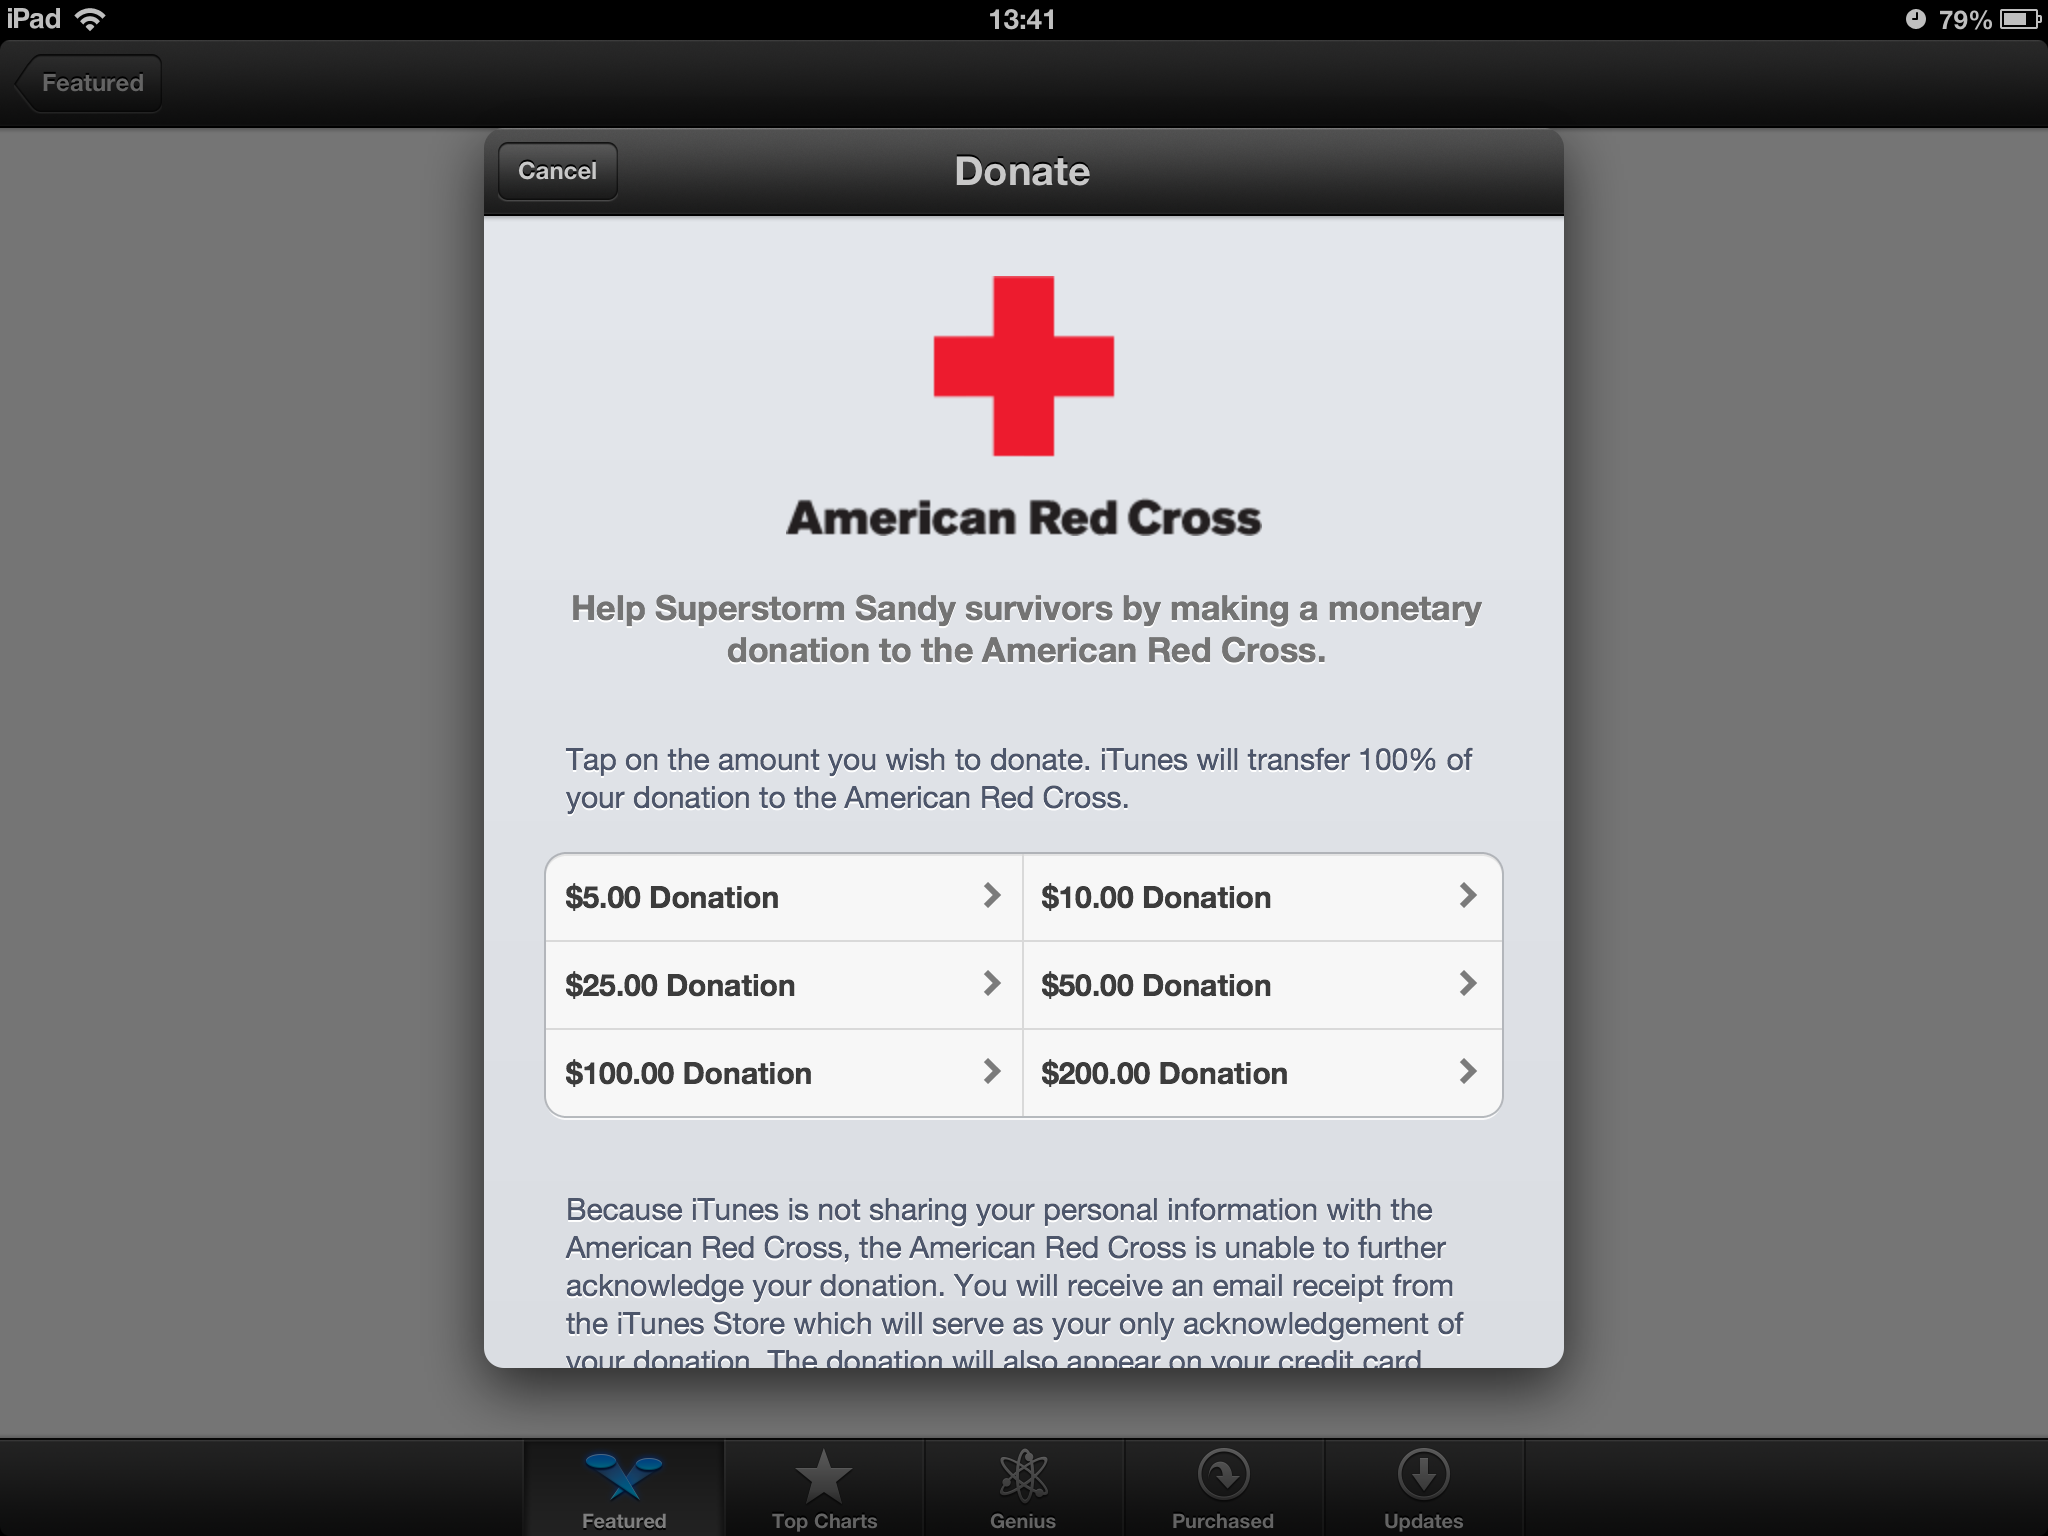 Apple Lets You Easily Donate To Charity Aid Superstorm Sandy Relief